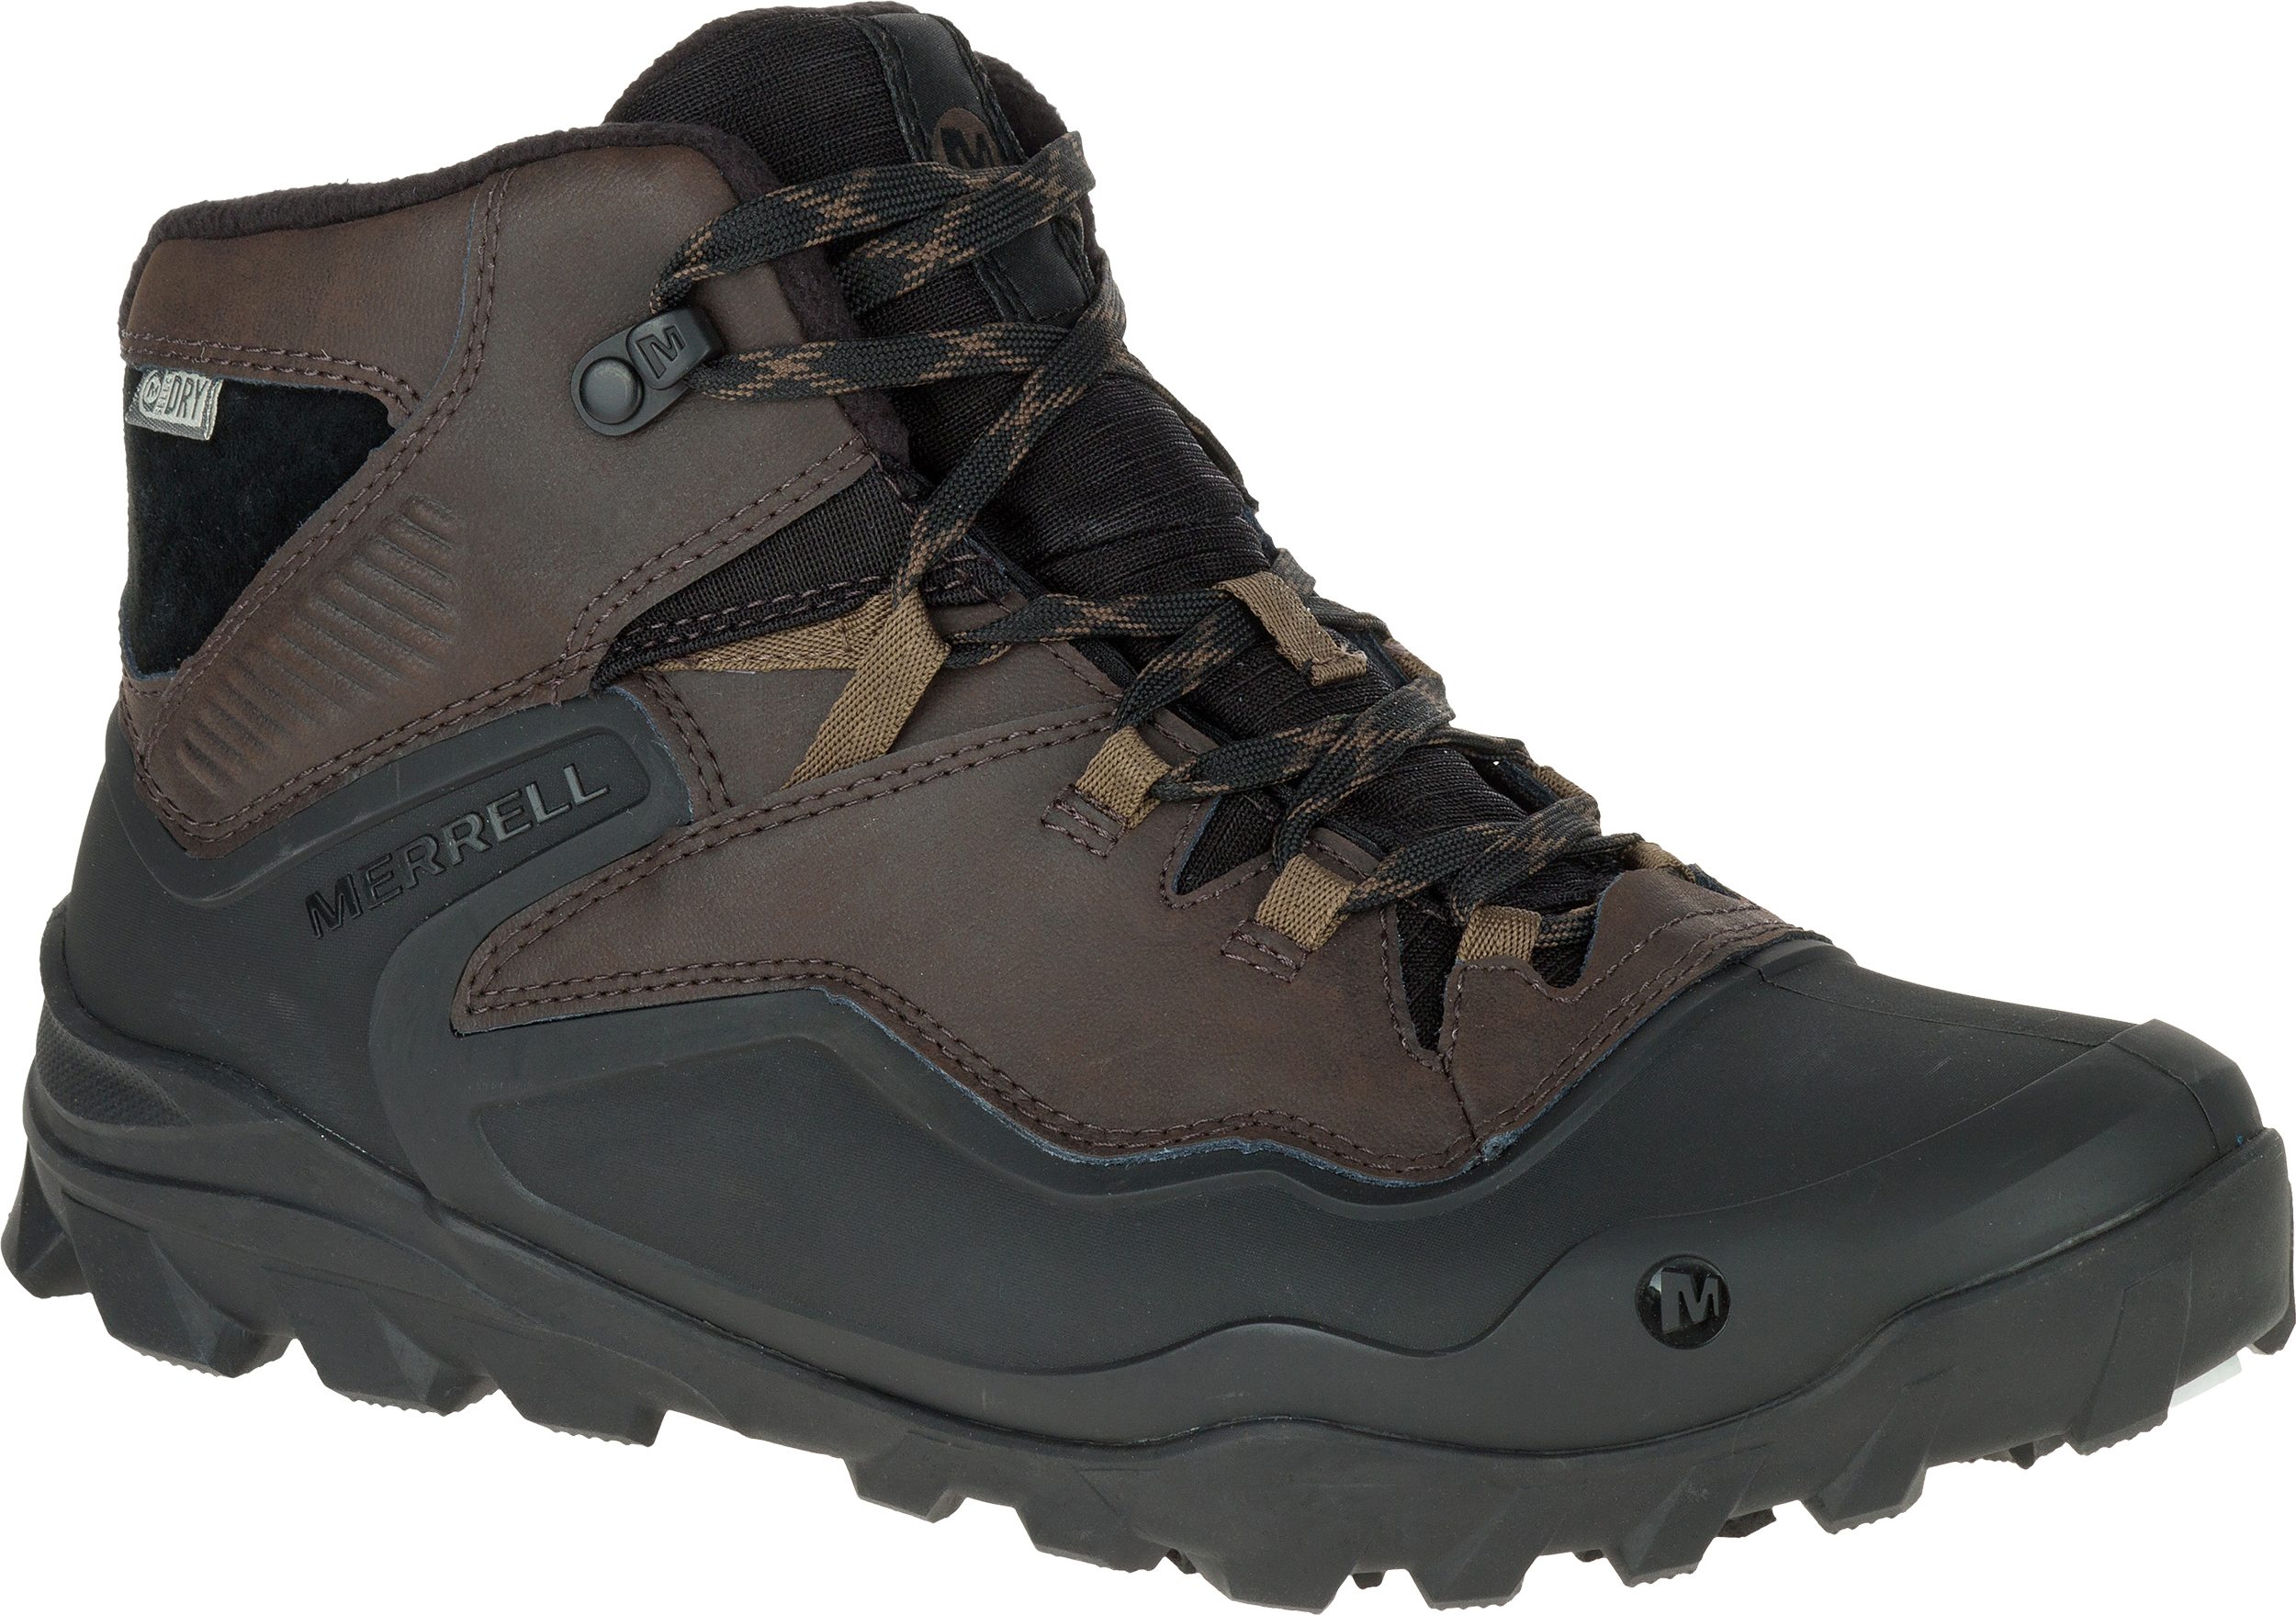 0fd295146f4 Men's Winter boots | MEC